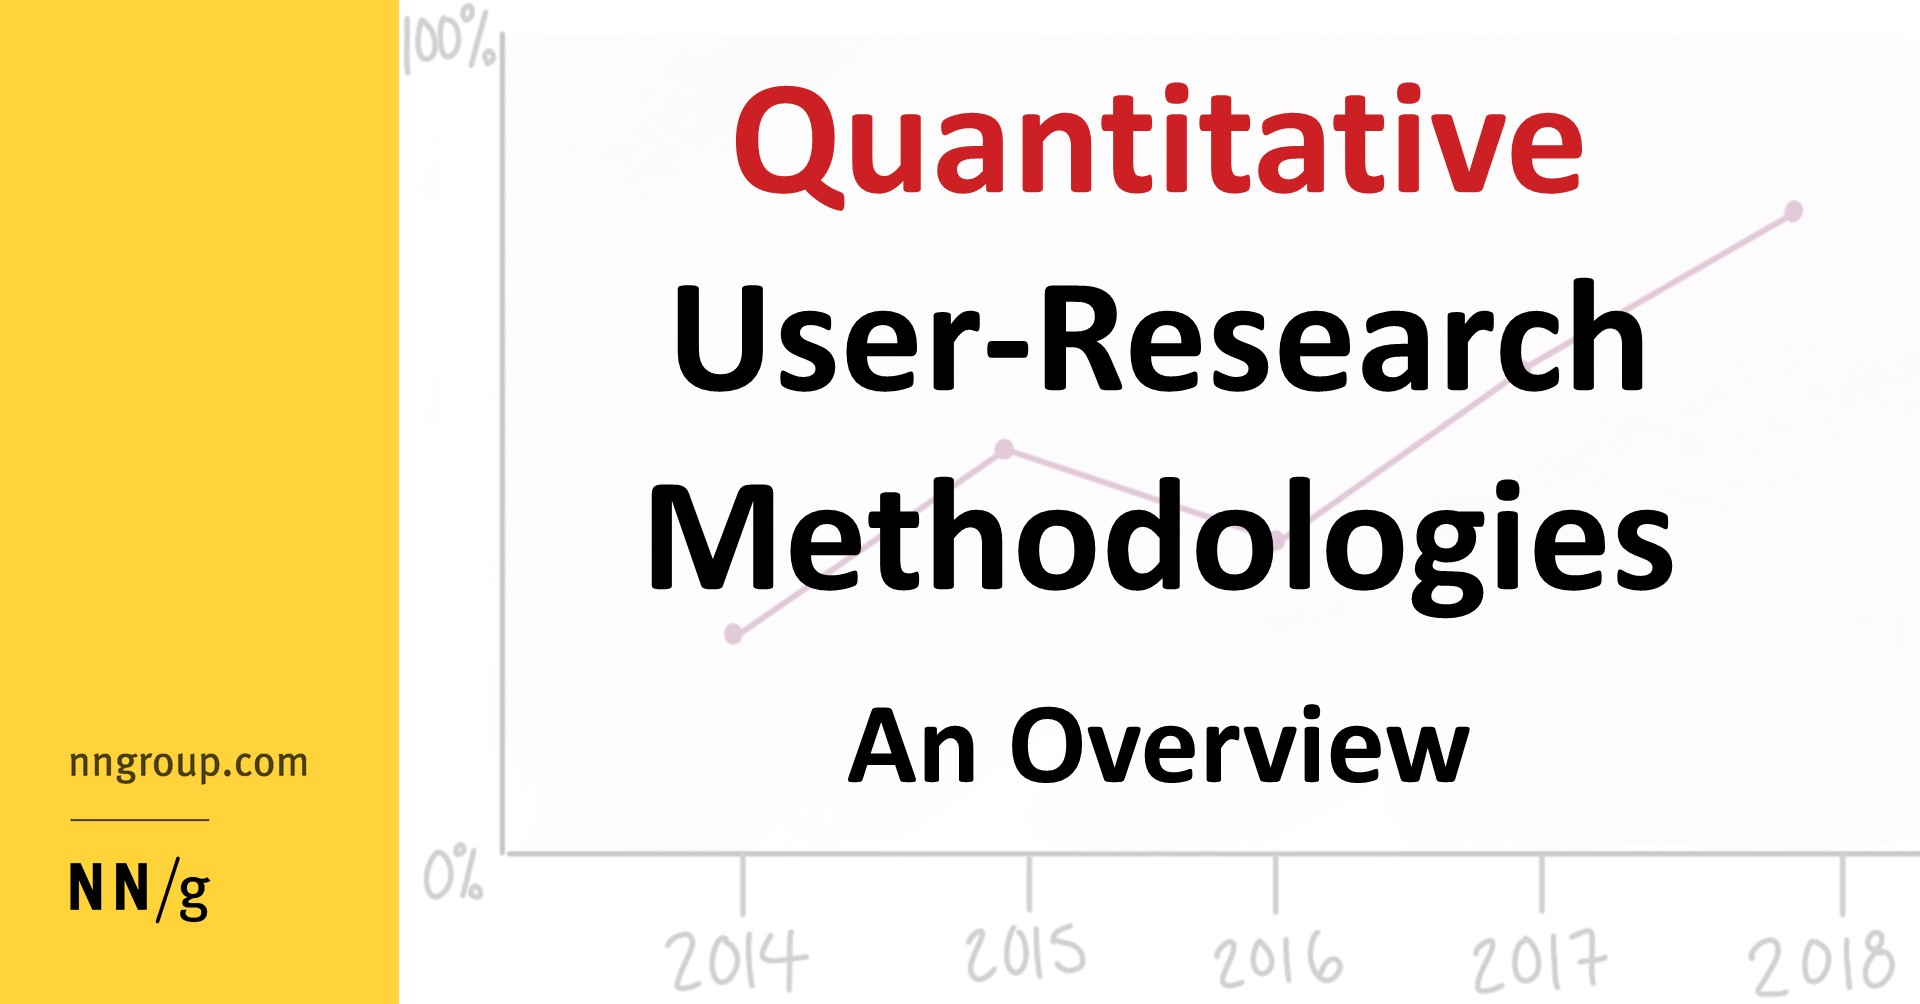 Quantitative User Research Methodologies An Overview